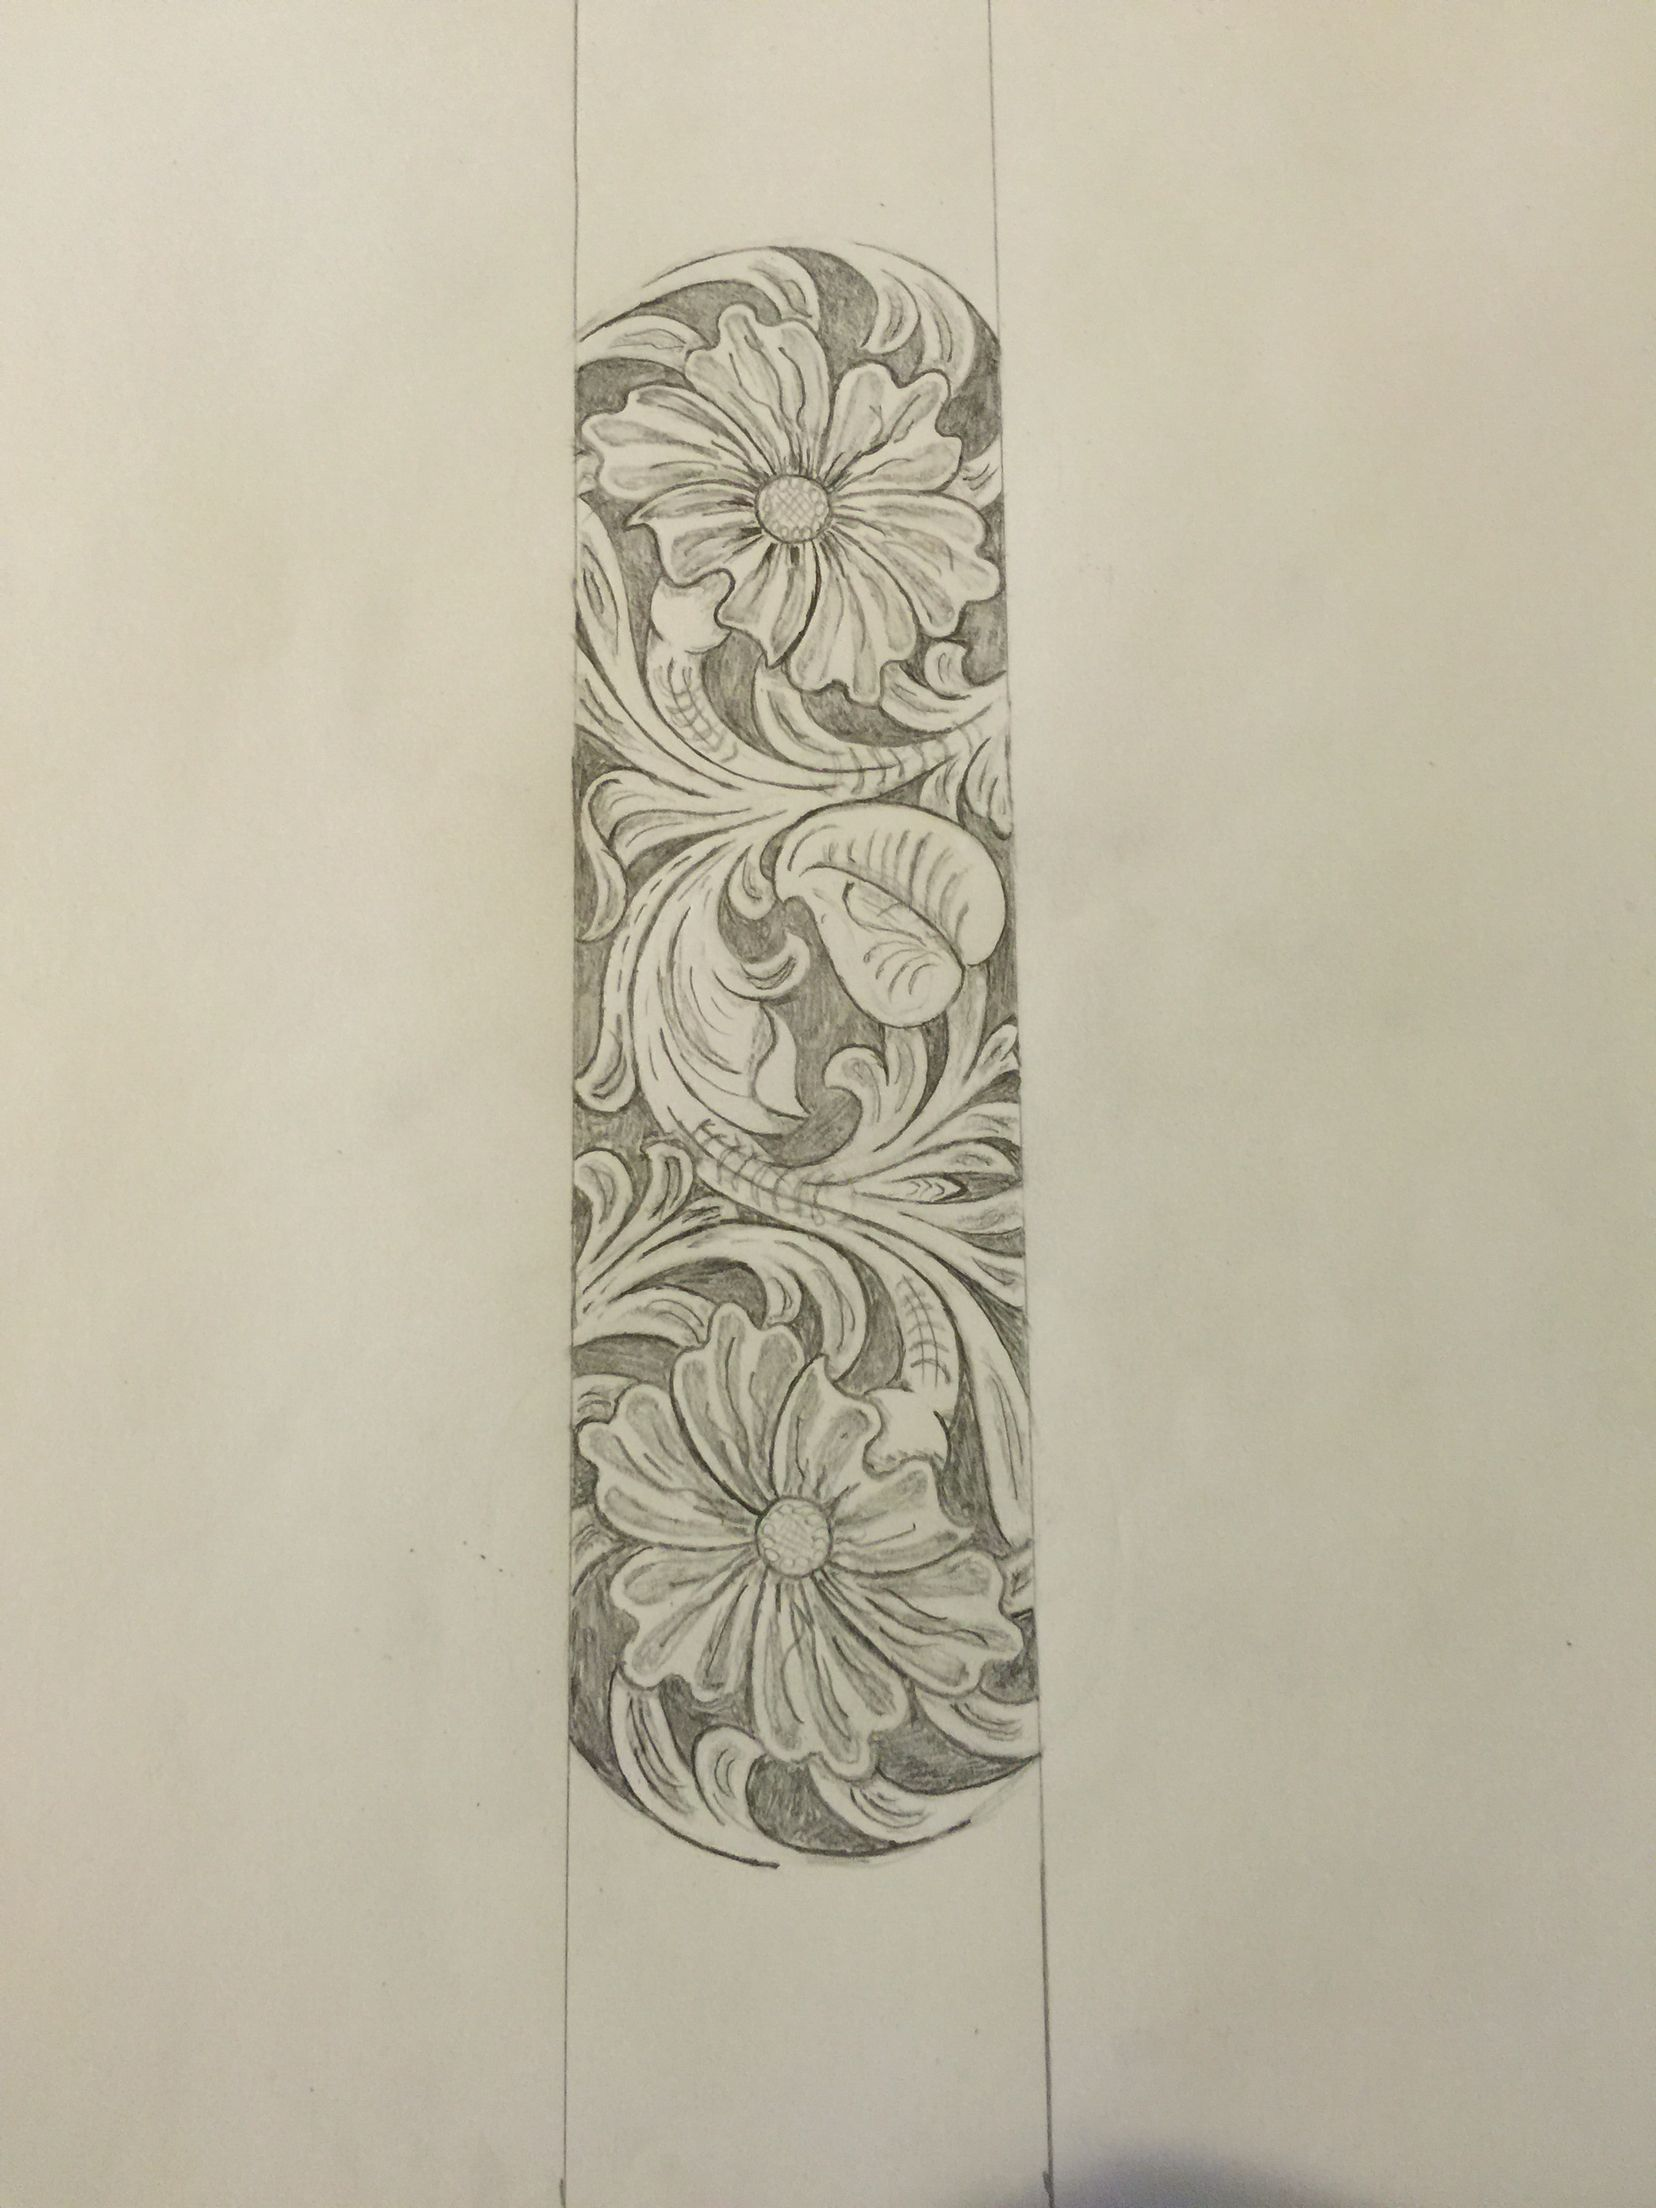 Sheridan style leather tooling pattern for guitar strap